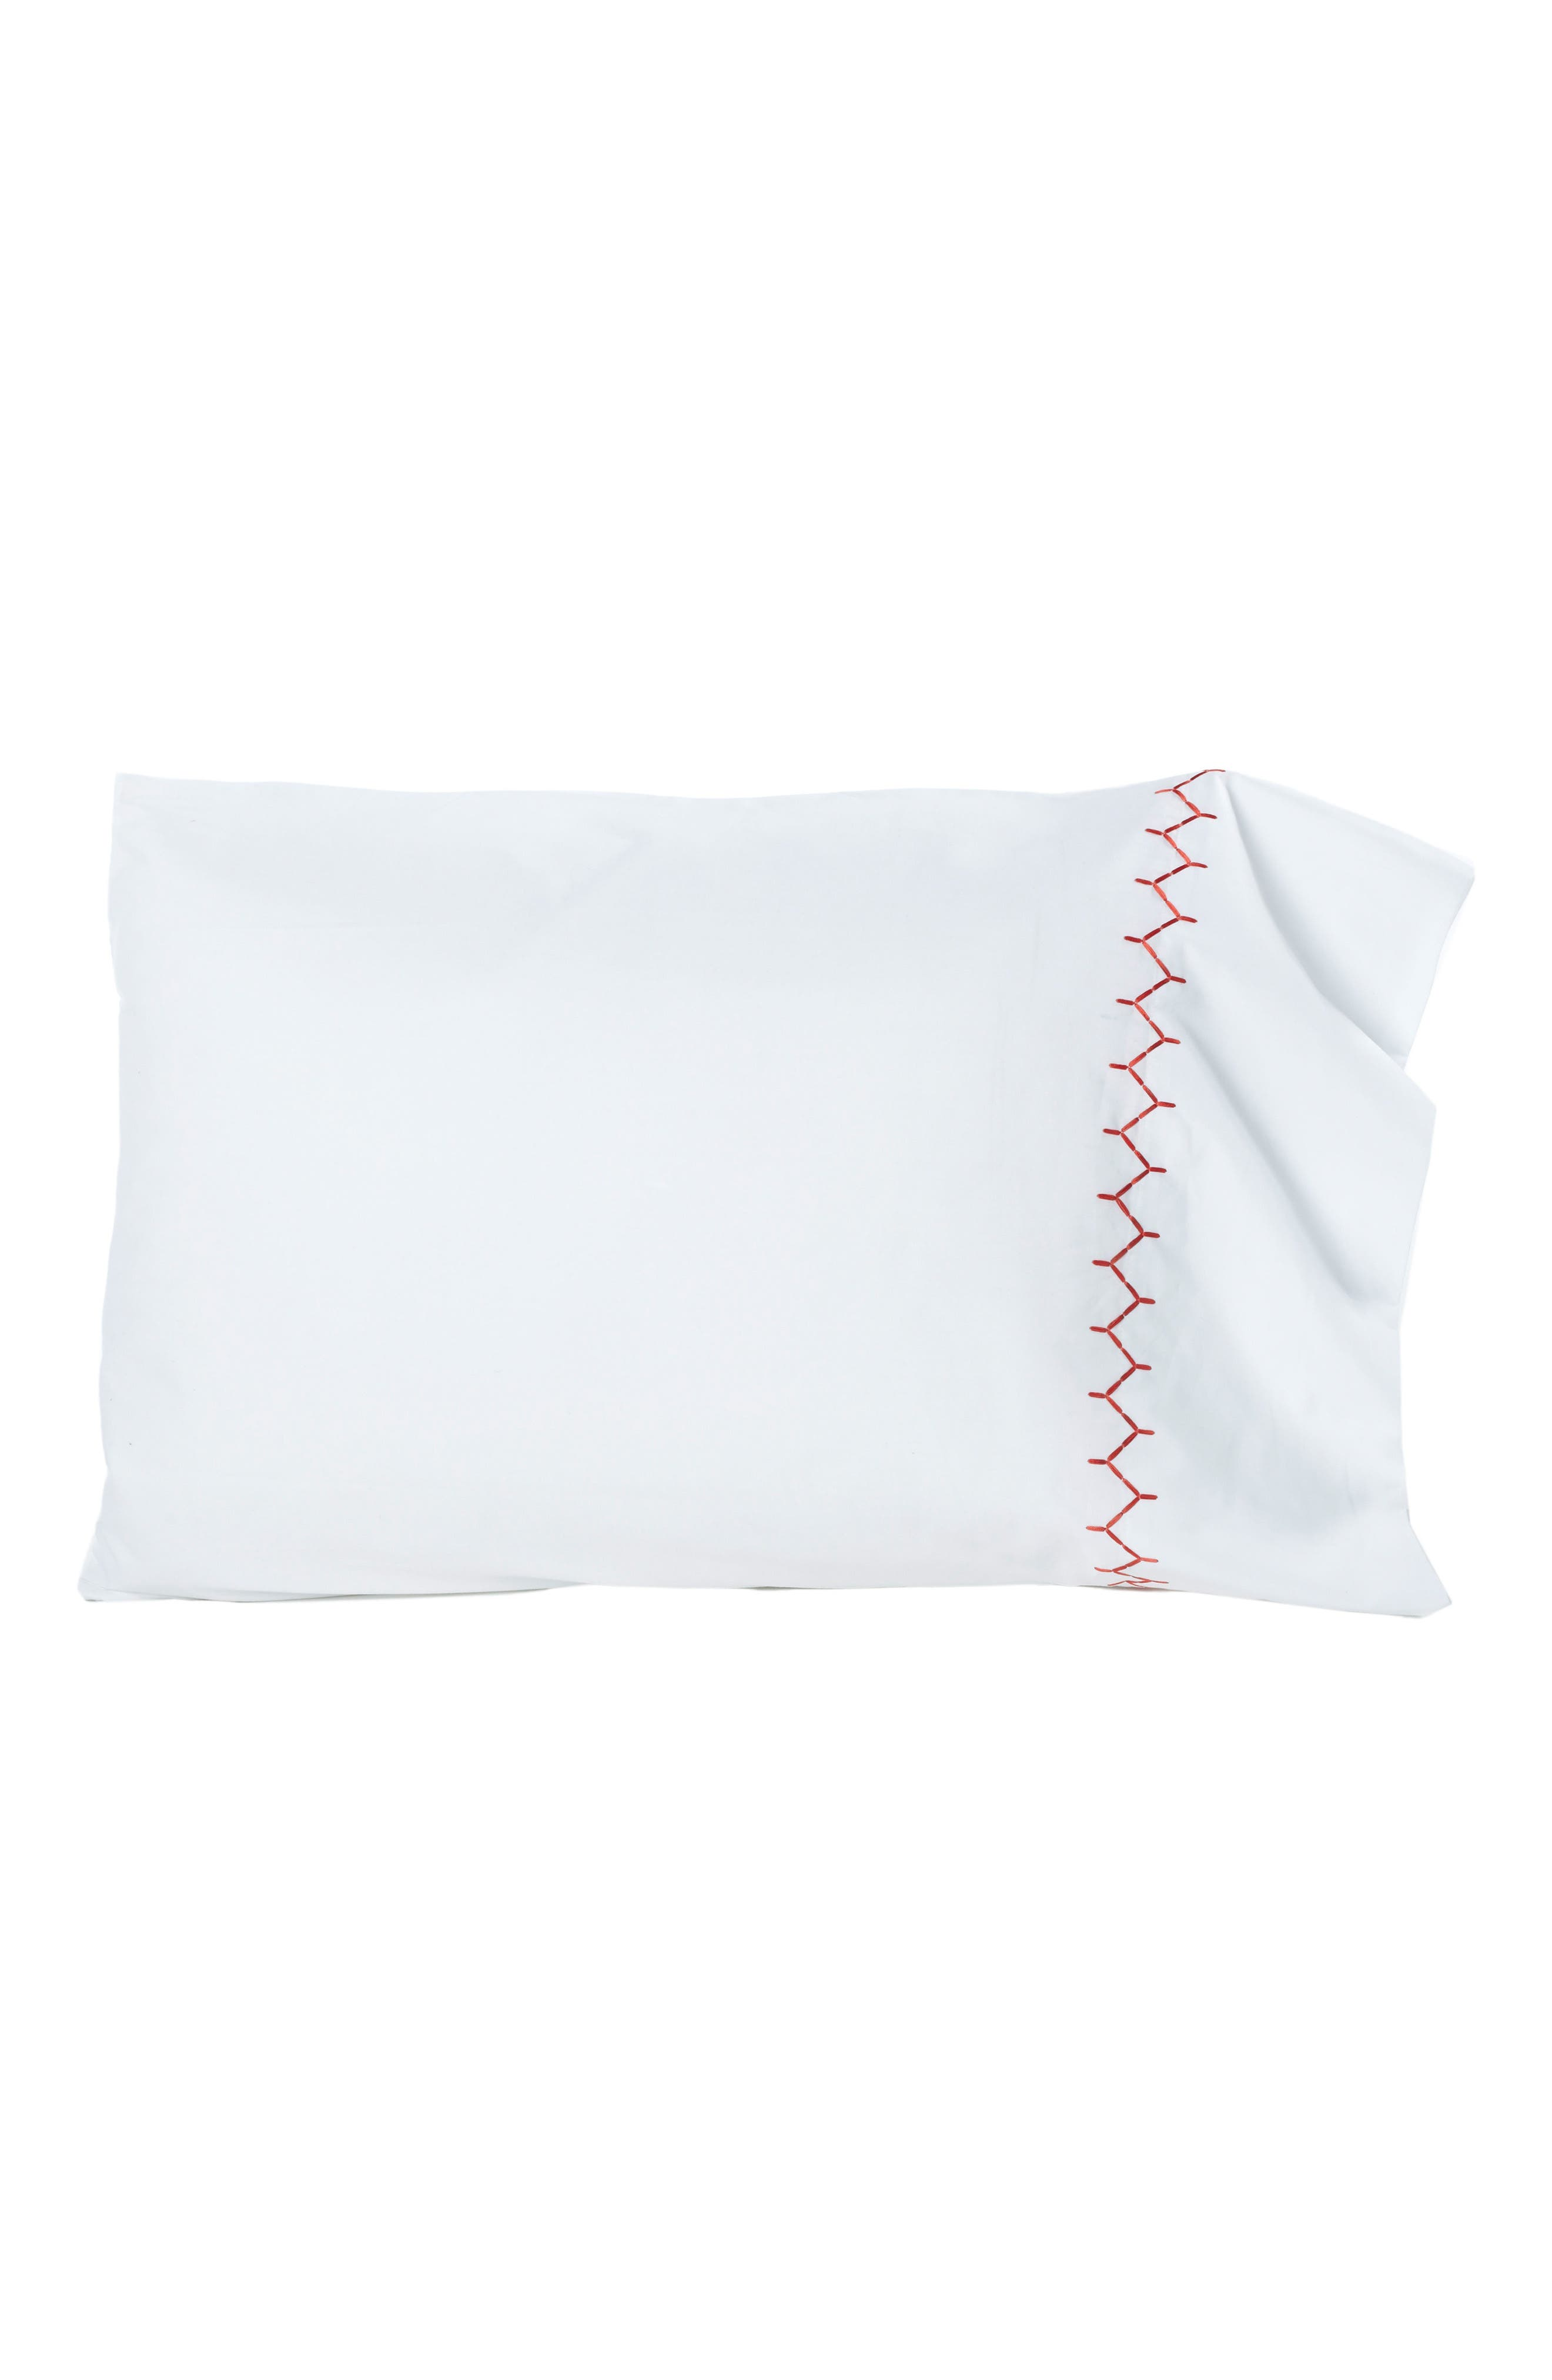 Stitched Border 300 Thread Count Pillowcases,                         Main,                         color, Coral/ White